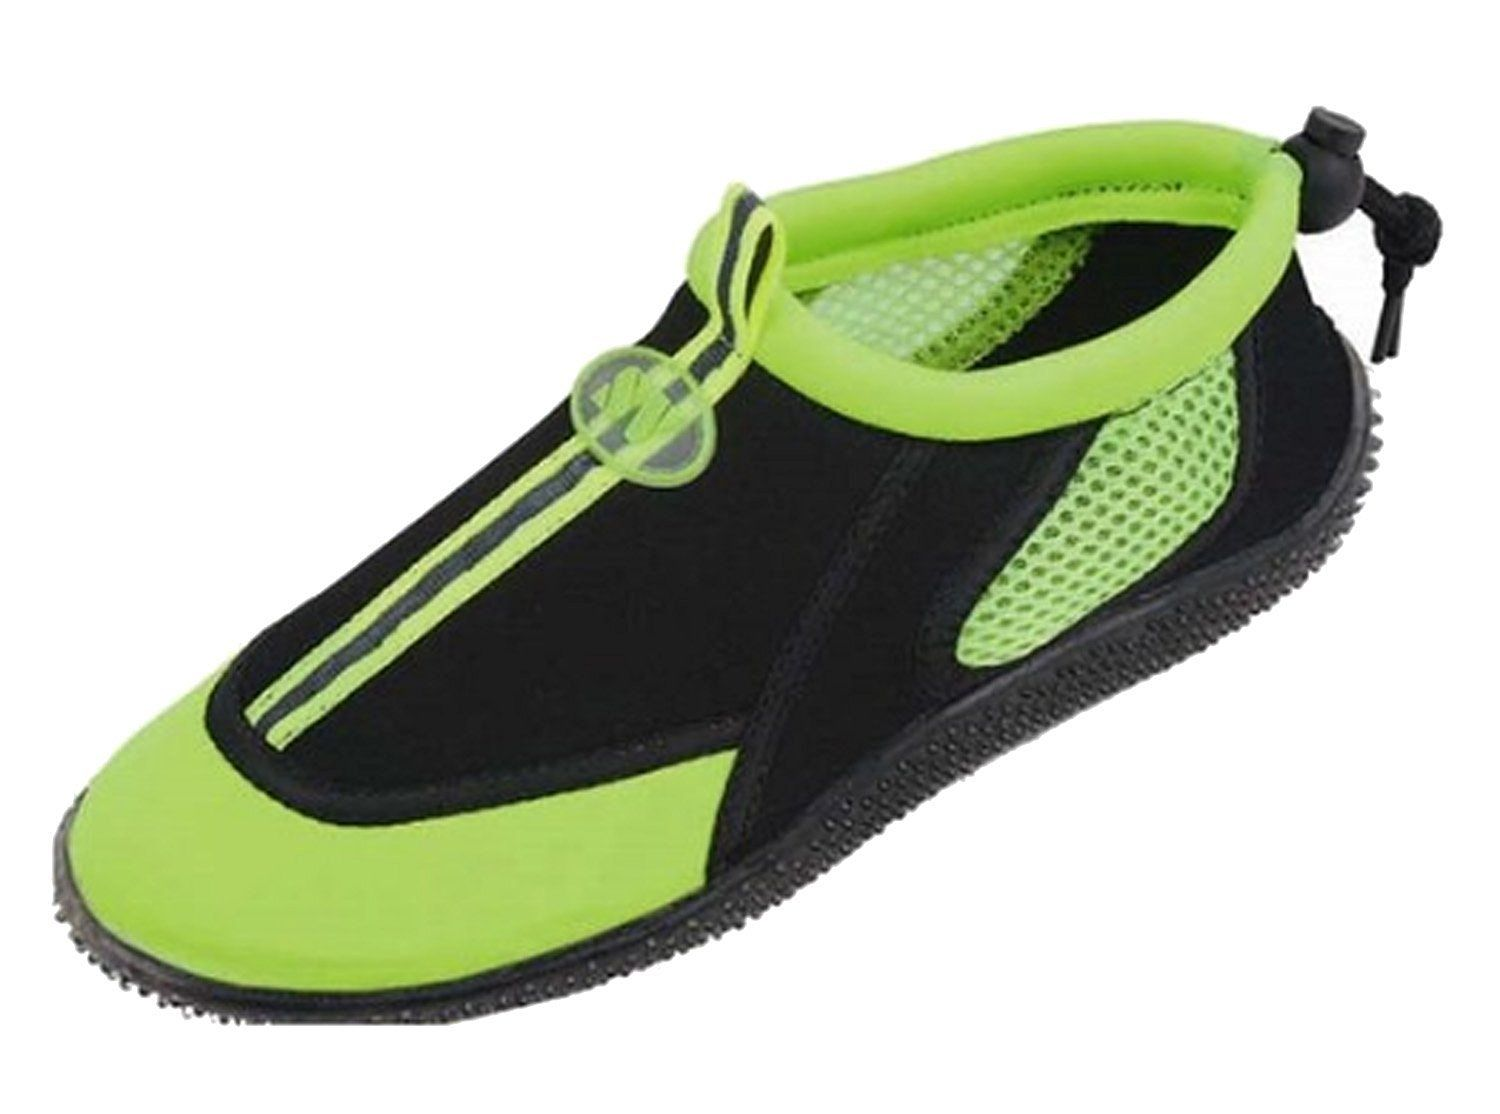 The Bay Women's Slip On Athletic Aqua Socks Water Shoes *** To view further for this item, visit the image link.